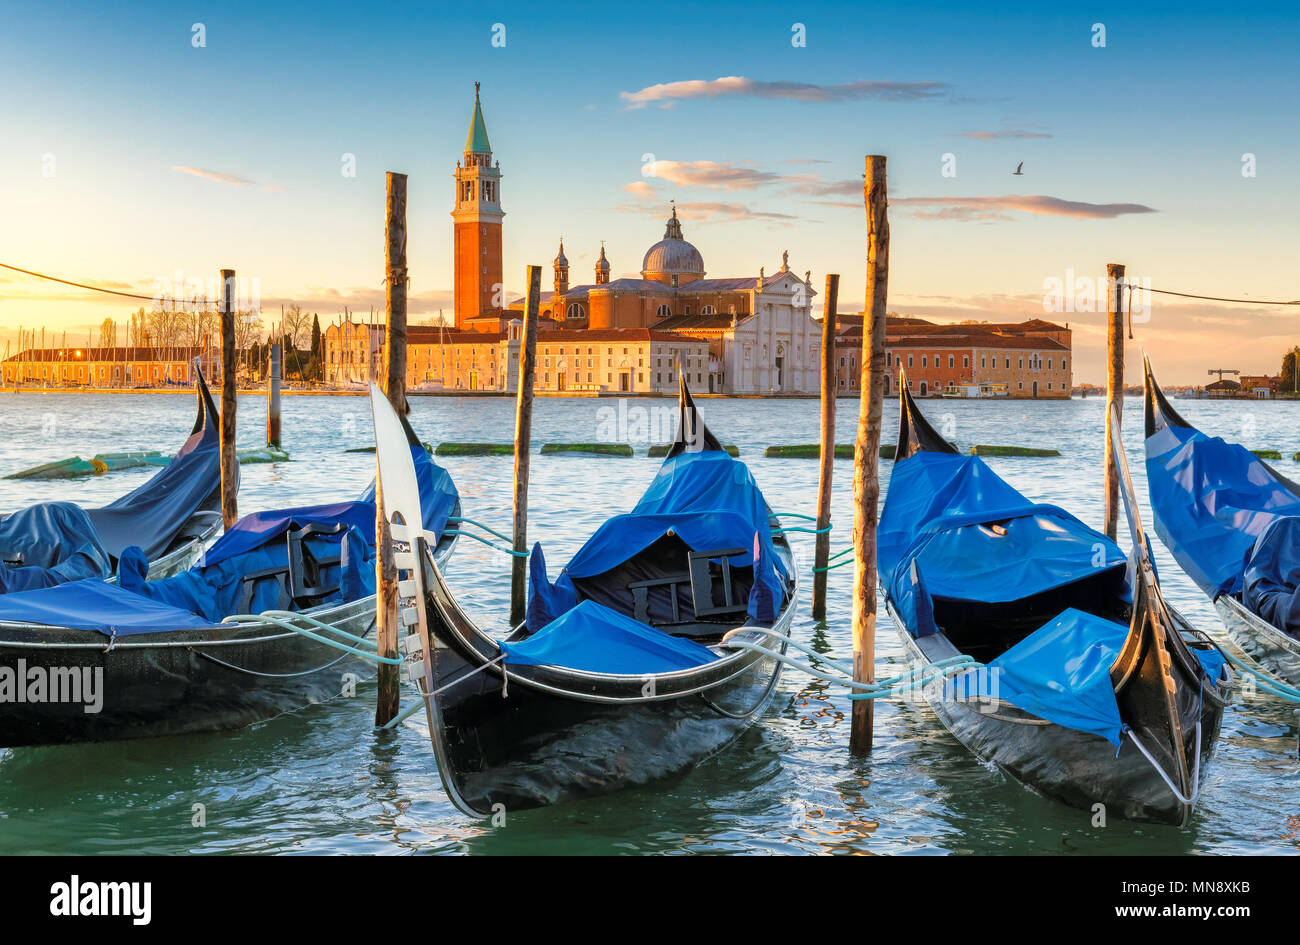 Venice gondolas near San Marco square at sunrise, Grand Canal, Venice, Italy. Stock Photo